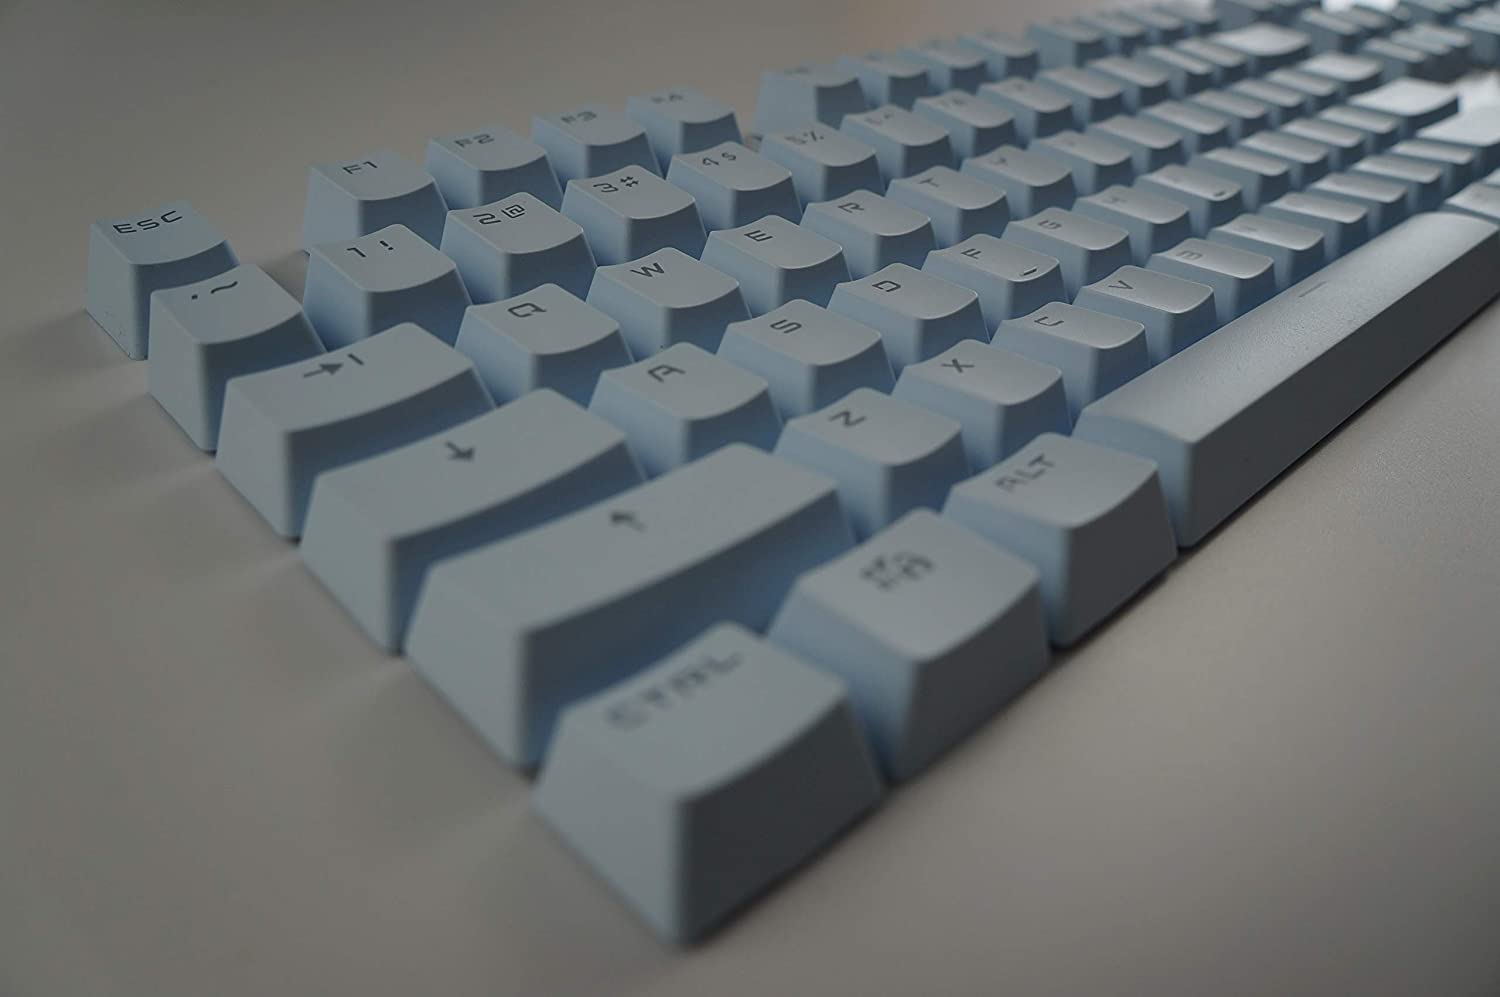 Compatible Cherry MX Switches White - OEM Profile 104 PBT Double Shot Backlit Keycaps for Mechanical Gaming Keyboard